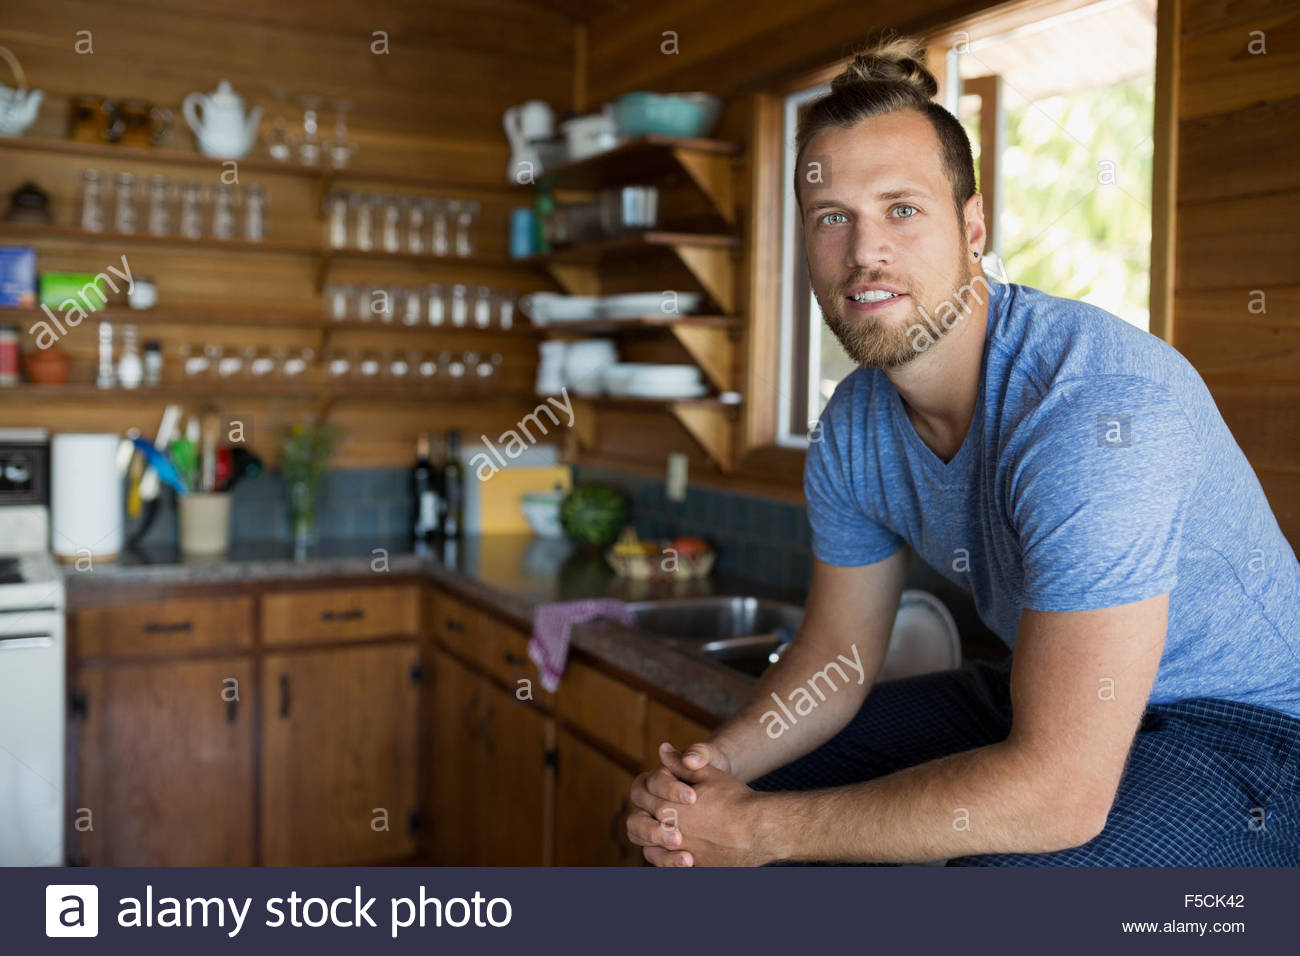 Portrait young man sitting in cabin kitchen - Stock Image